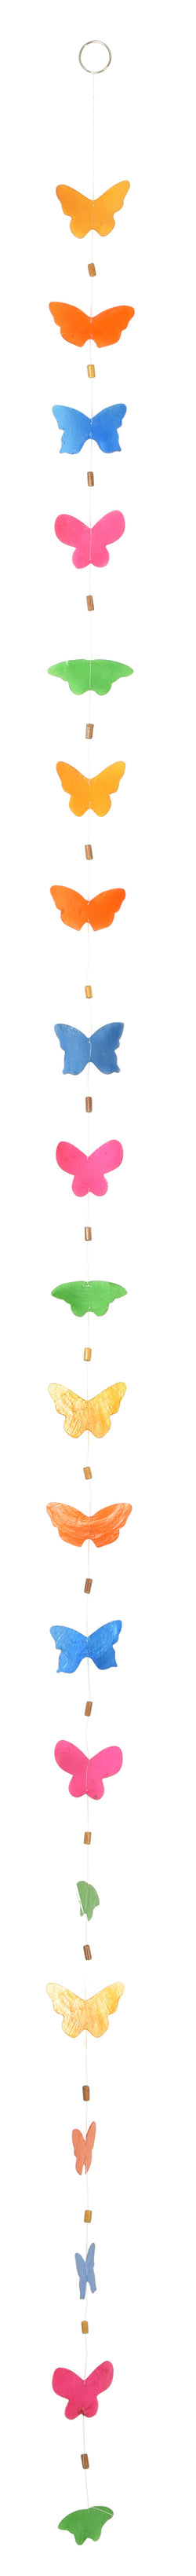 Capiz Shell Garlands - Fun Styles, Colored Butterfly